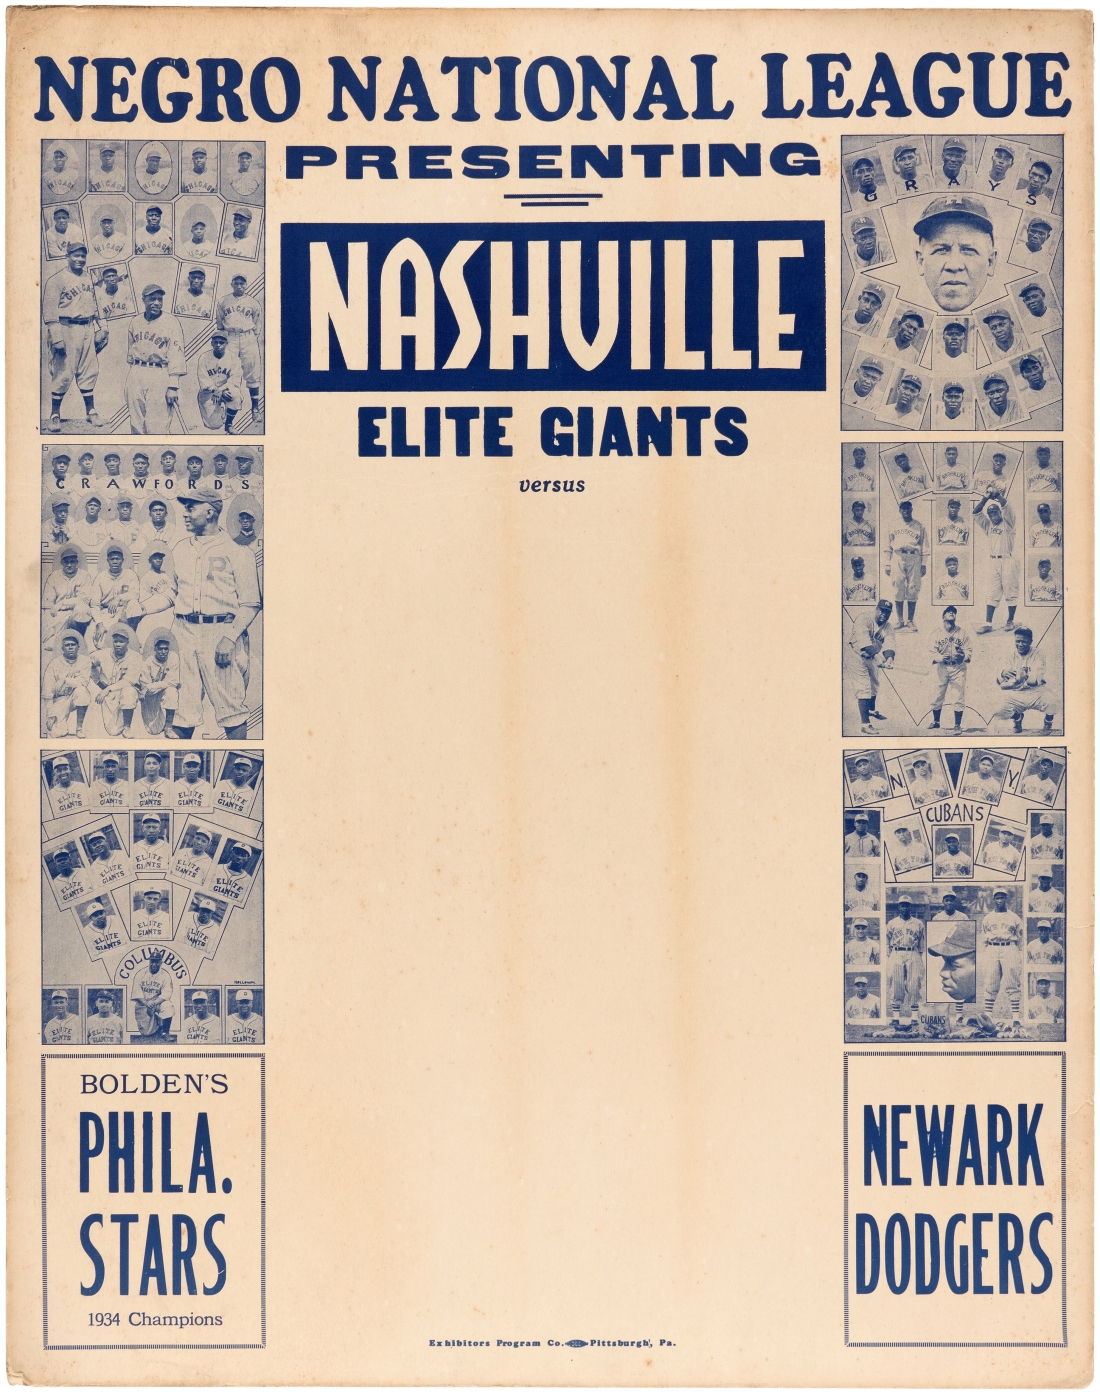 The first page of the 1935 Negro National League broadside shows group shots of six of the eight teams.